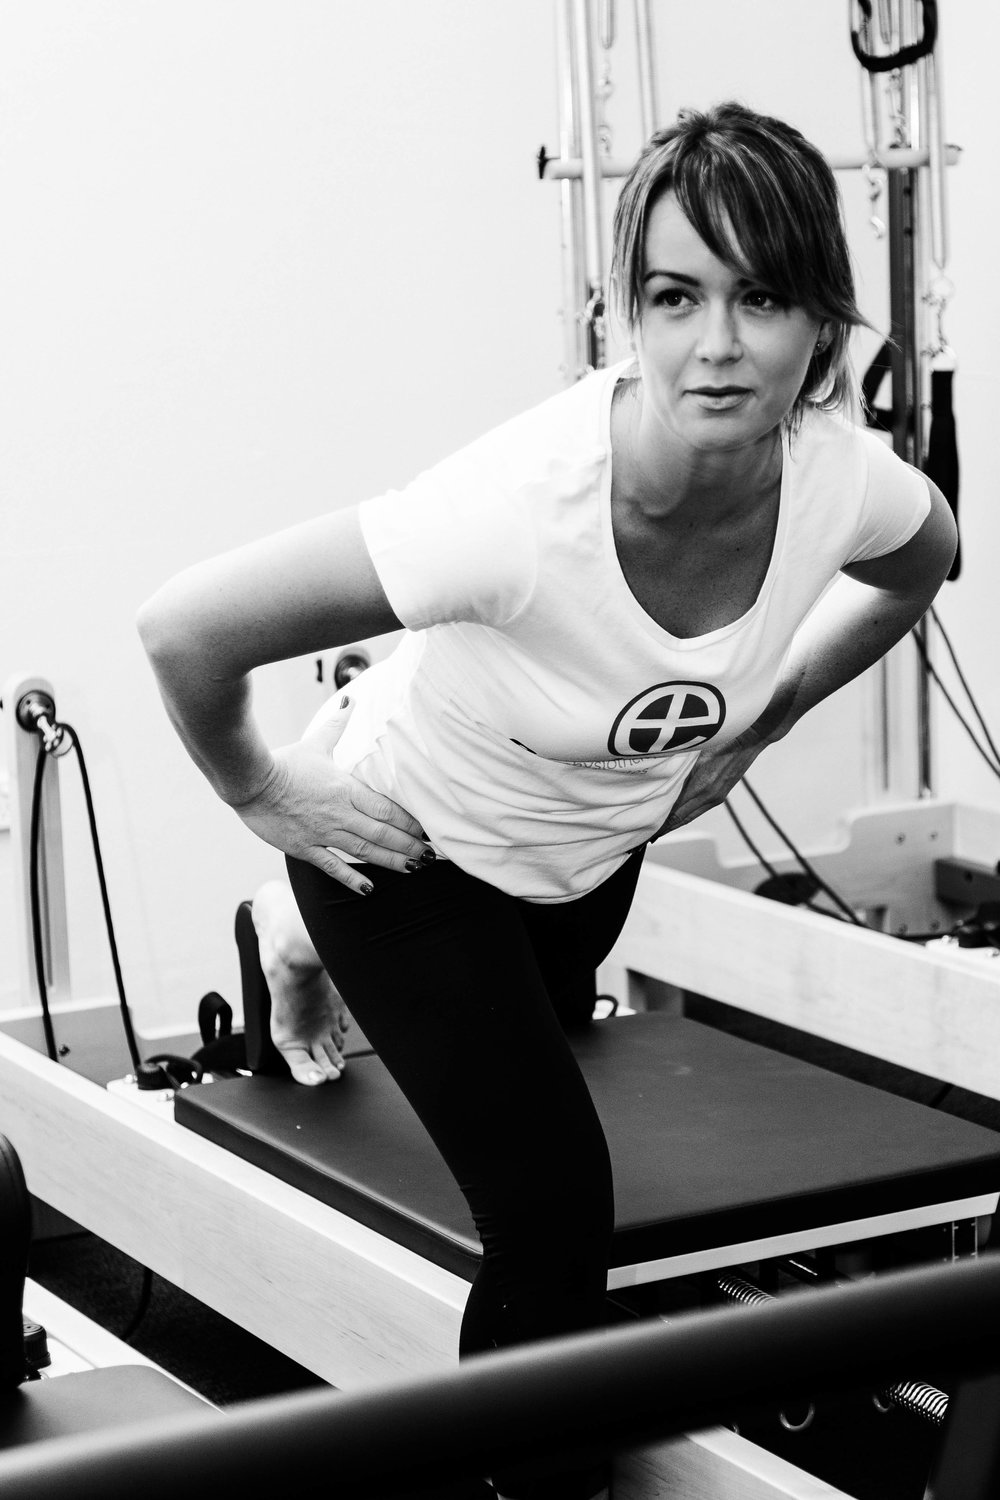 Karolina: - Setting a New Year's Resolution to get back into running? Karolina treats many runners and can assist you in creating a plan, so you can get back to running and avoid injury! As a runner herself, Karolina can not only help you with any current injuries and injury prevention, but can also help you come up with the best training plan. Karolina can do a video analysis of your running to give you specific tips to have you running much faster and more efficiently!